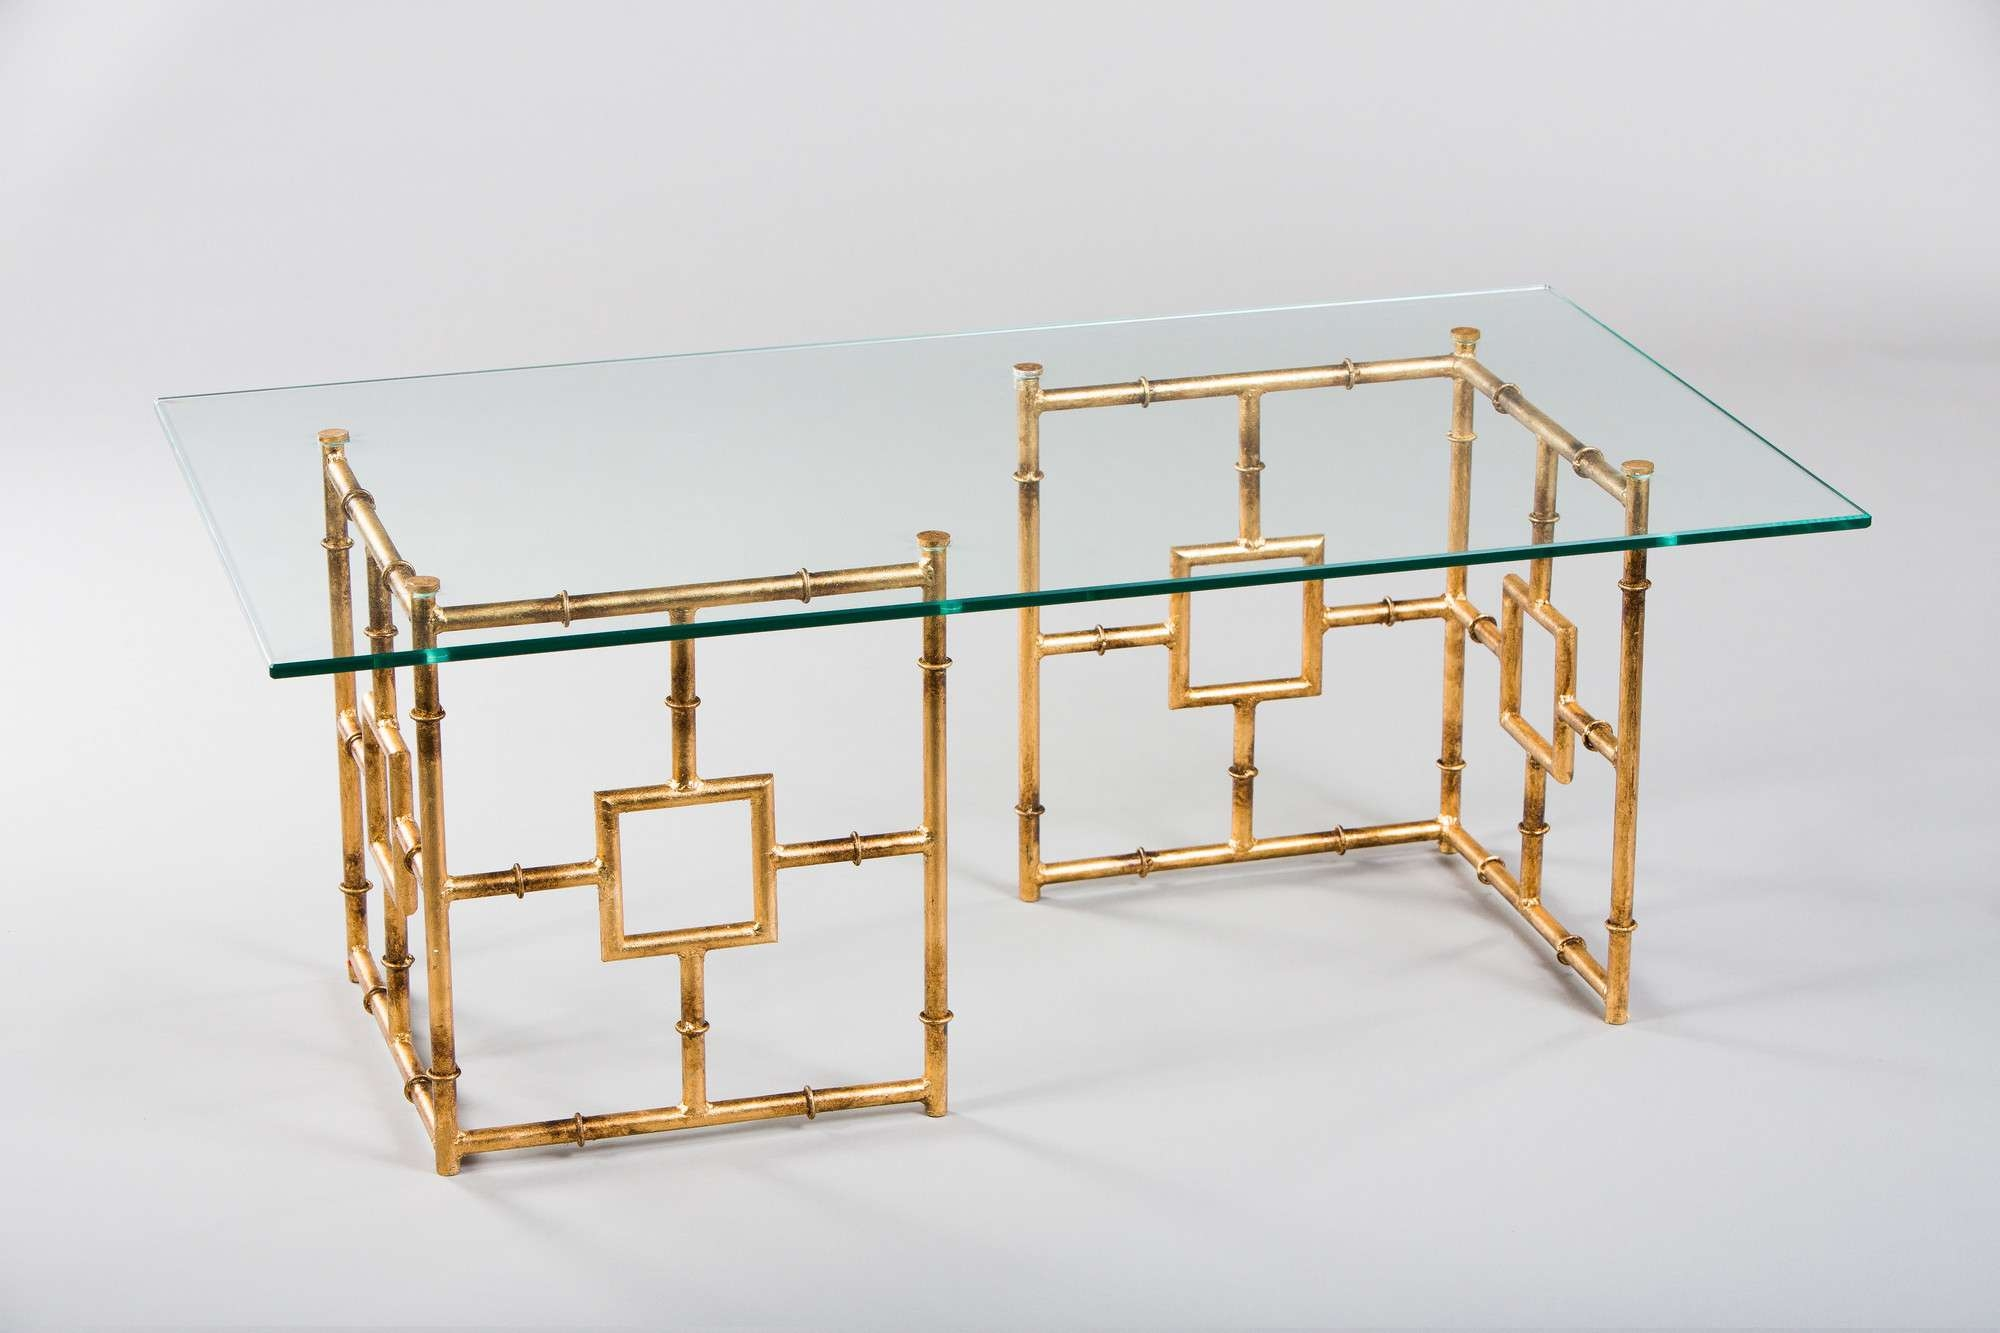 2018 Glass Gold Coffee Tables Pertaining To Coffee Tables : Wayfair Glass And Gold Coffee Table Round Square (View 1 of 20)